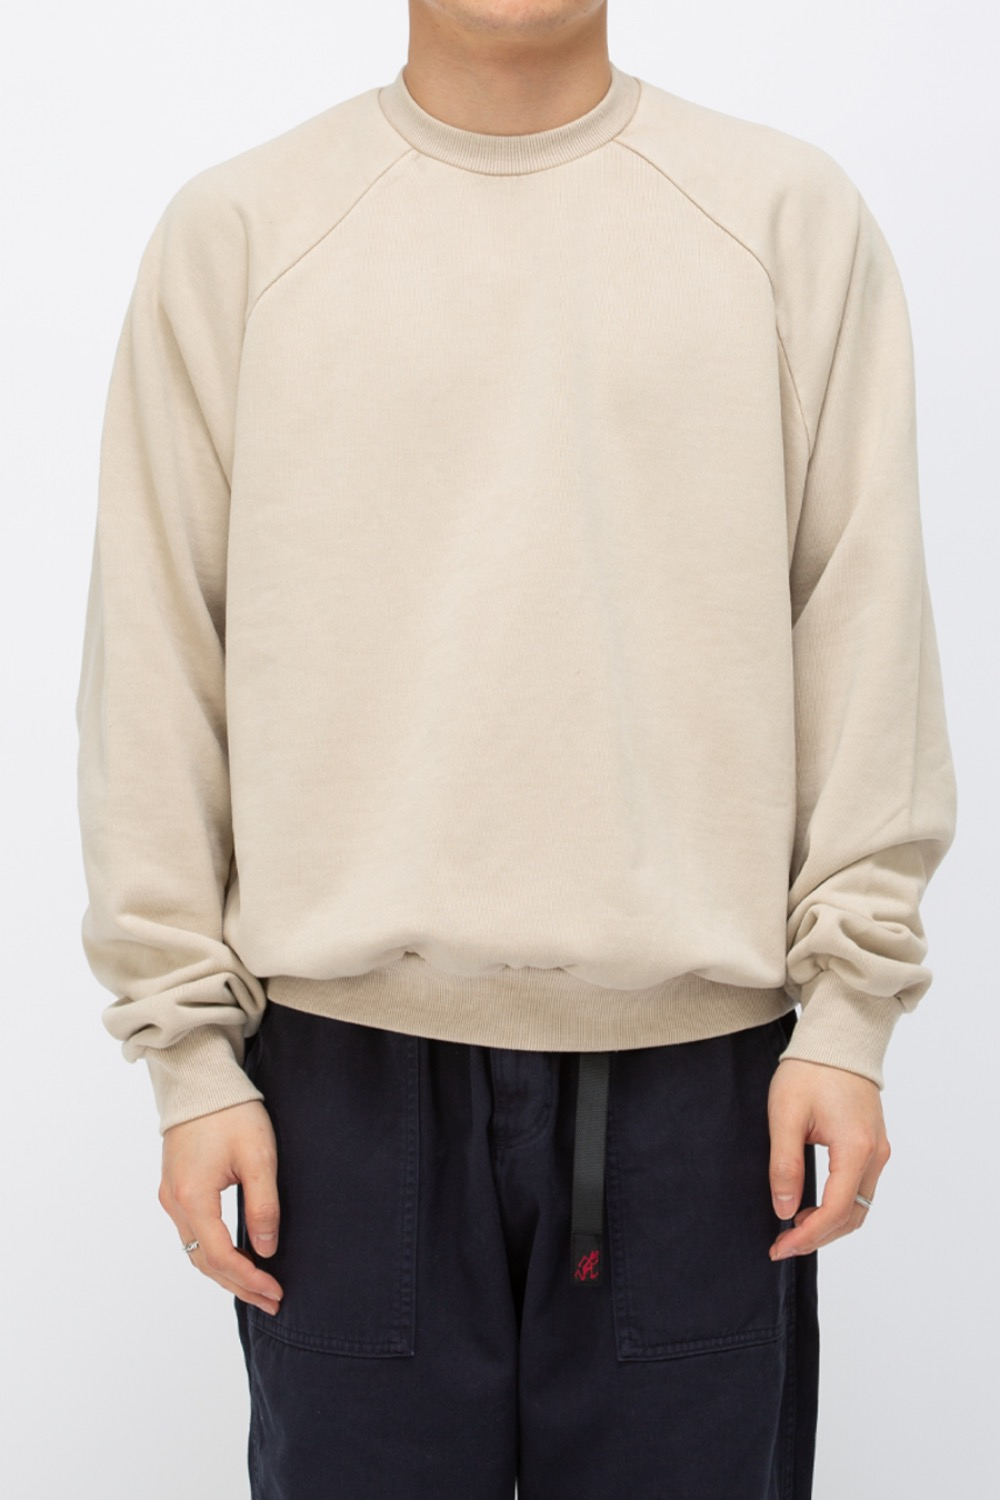 HEAVY WEIGHT OVERSIZE SWEATSHIRT WASHED(PREMIUM BASIC) BEIGE